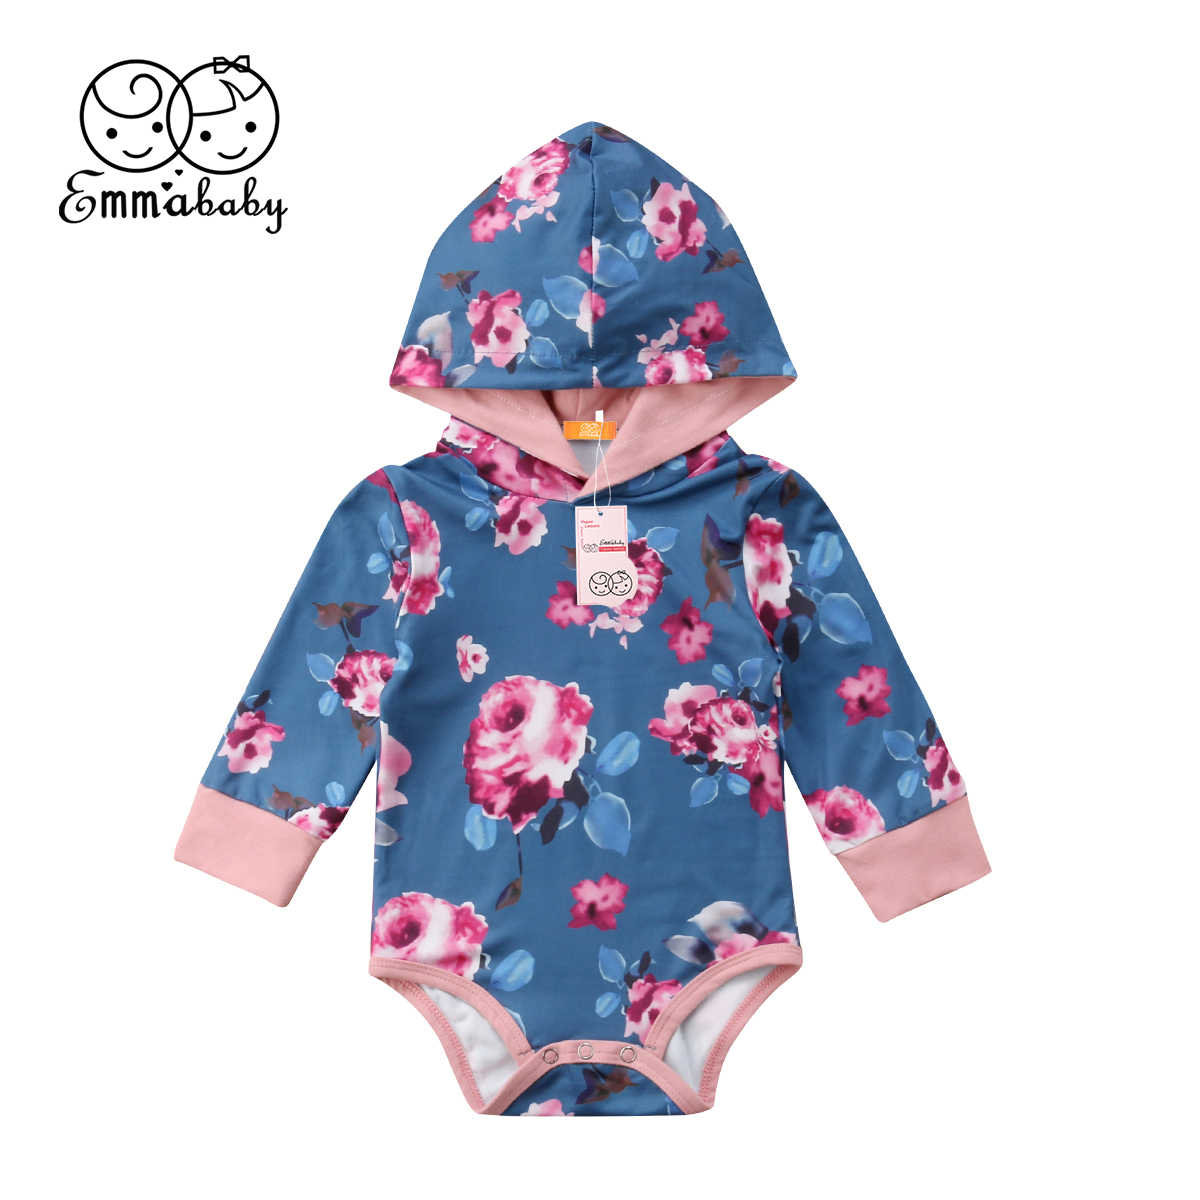 2c8775f86 Newborn Baby Kid Cute Floral Hoodies Romper Jumpsuit Bodysuit Outfit  Coverall Ca